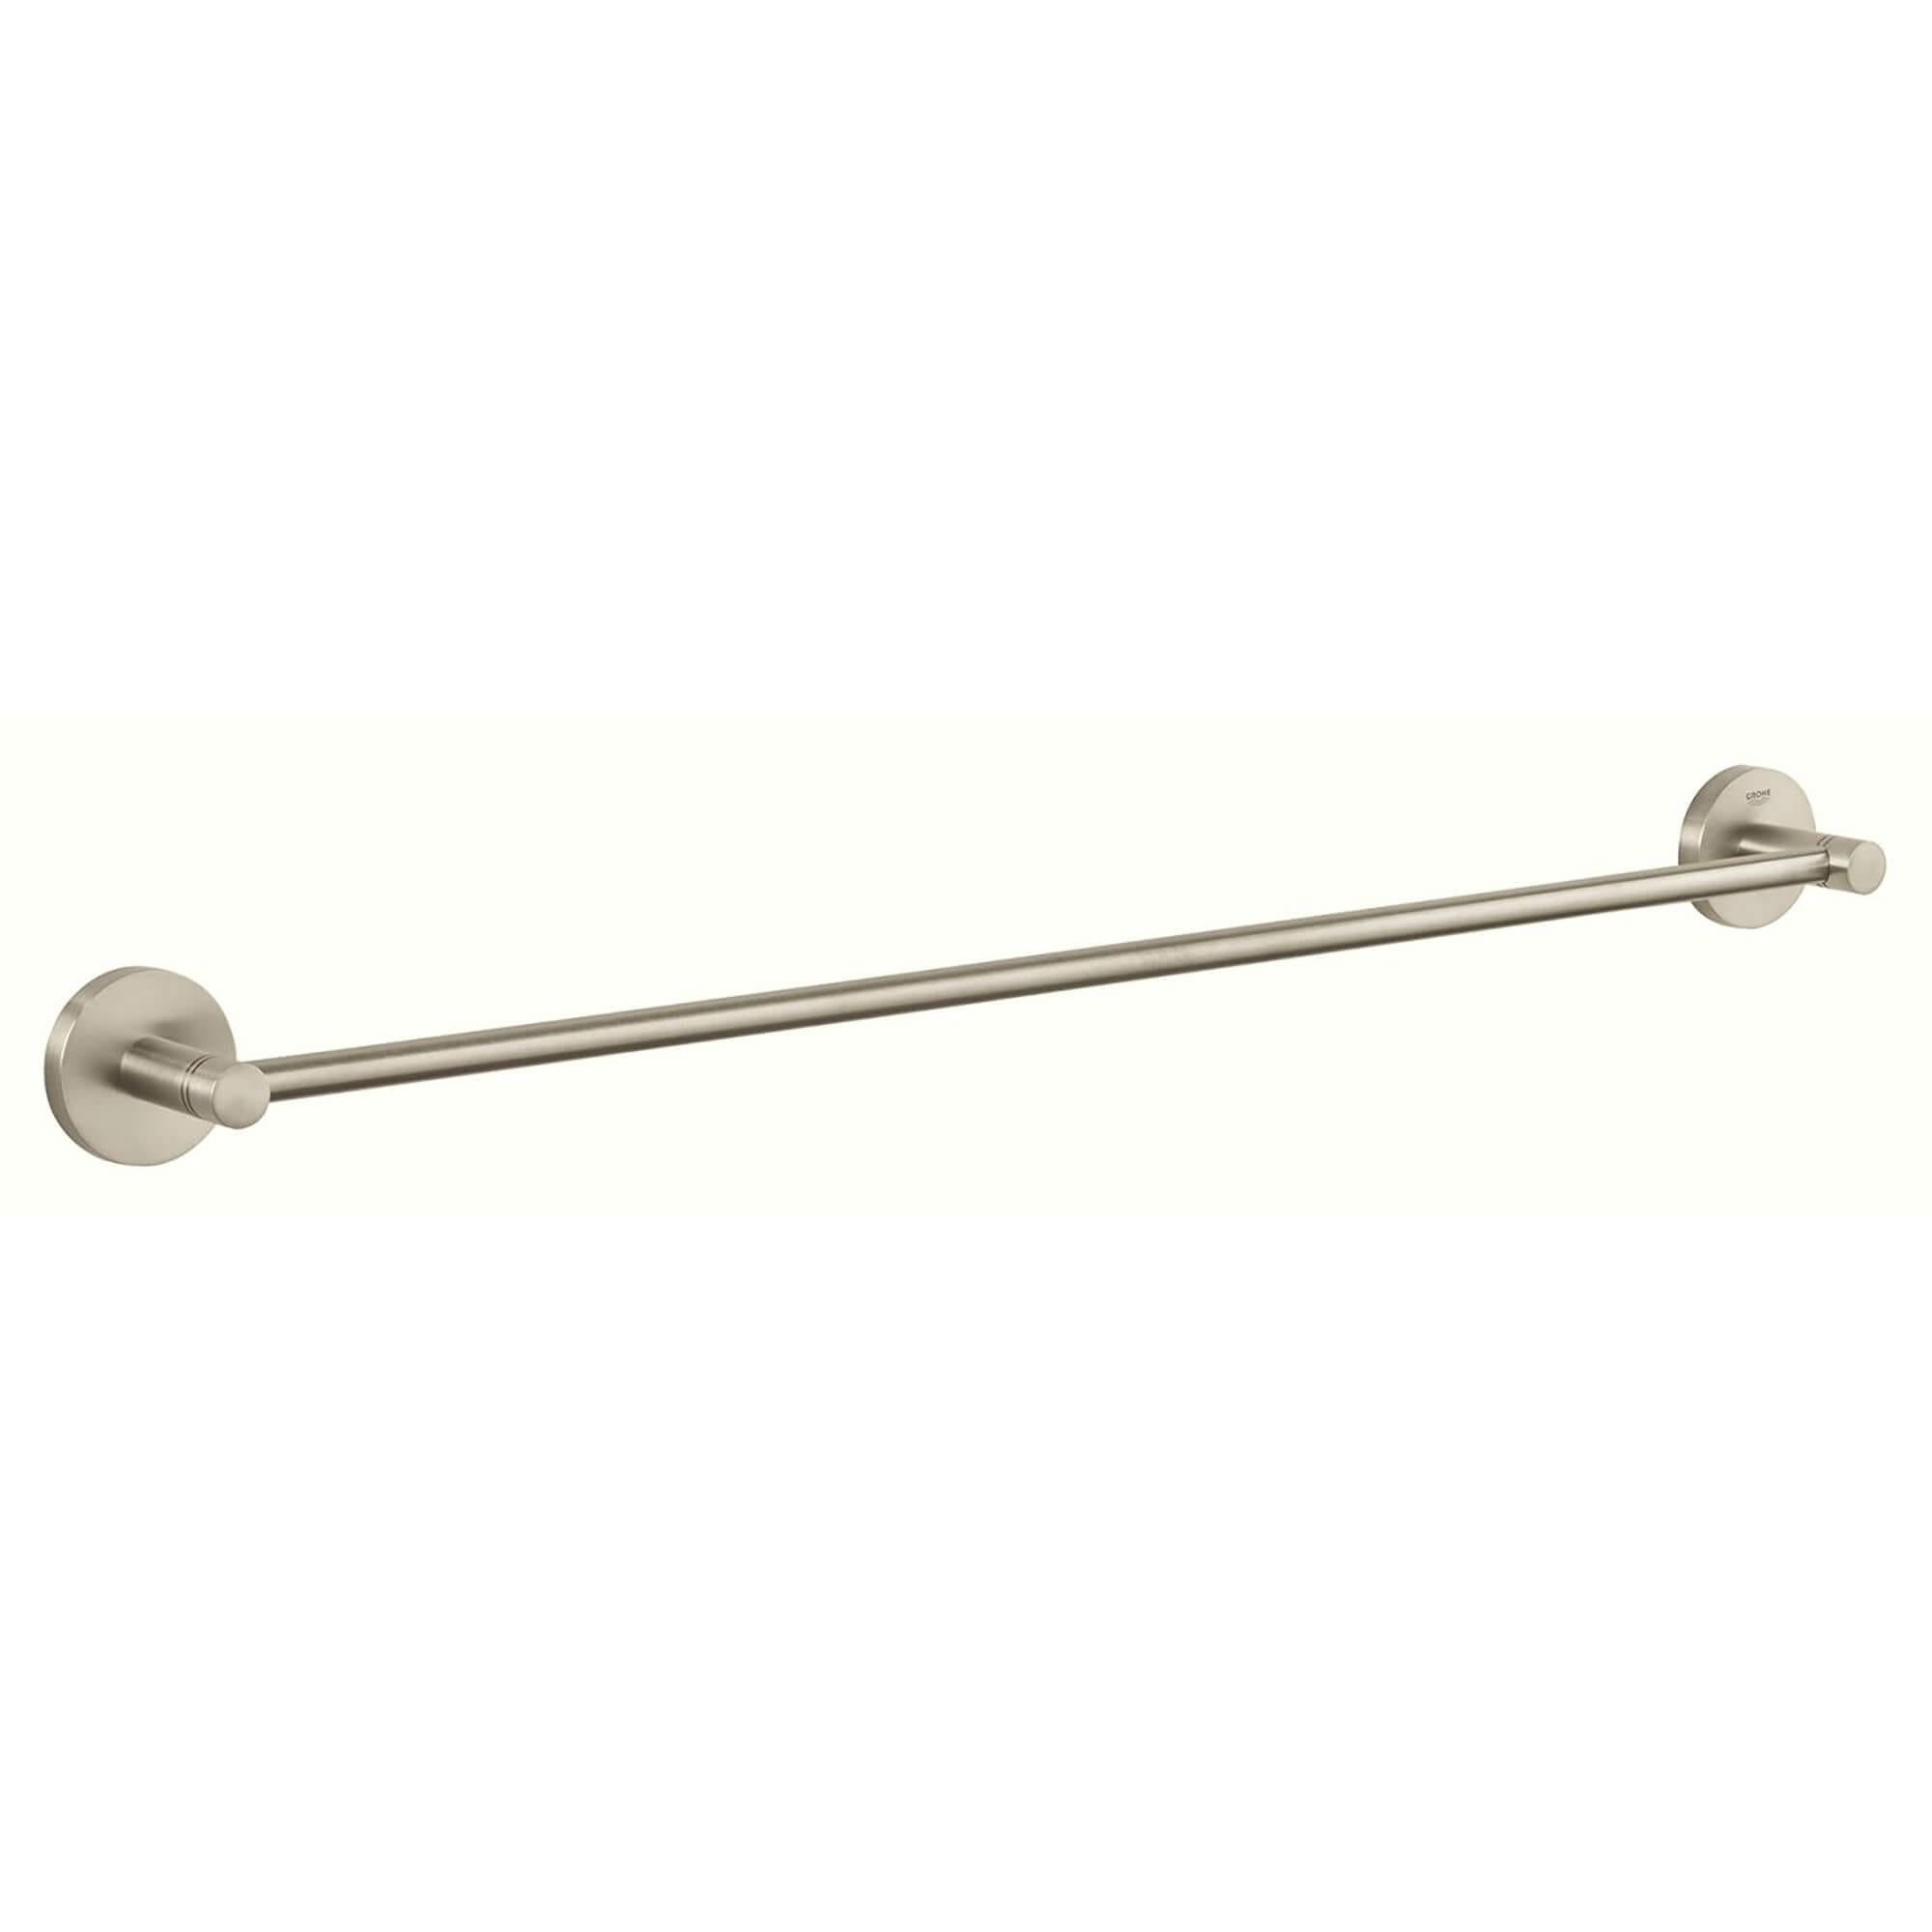 Towel Bar GROHE BRUSHED NICKEL